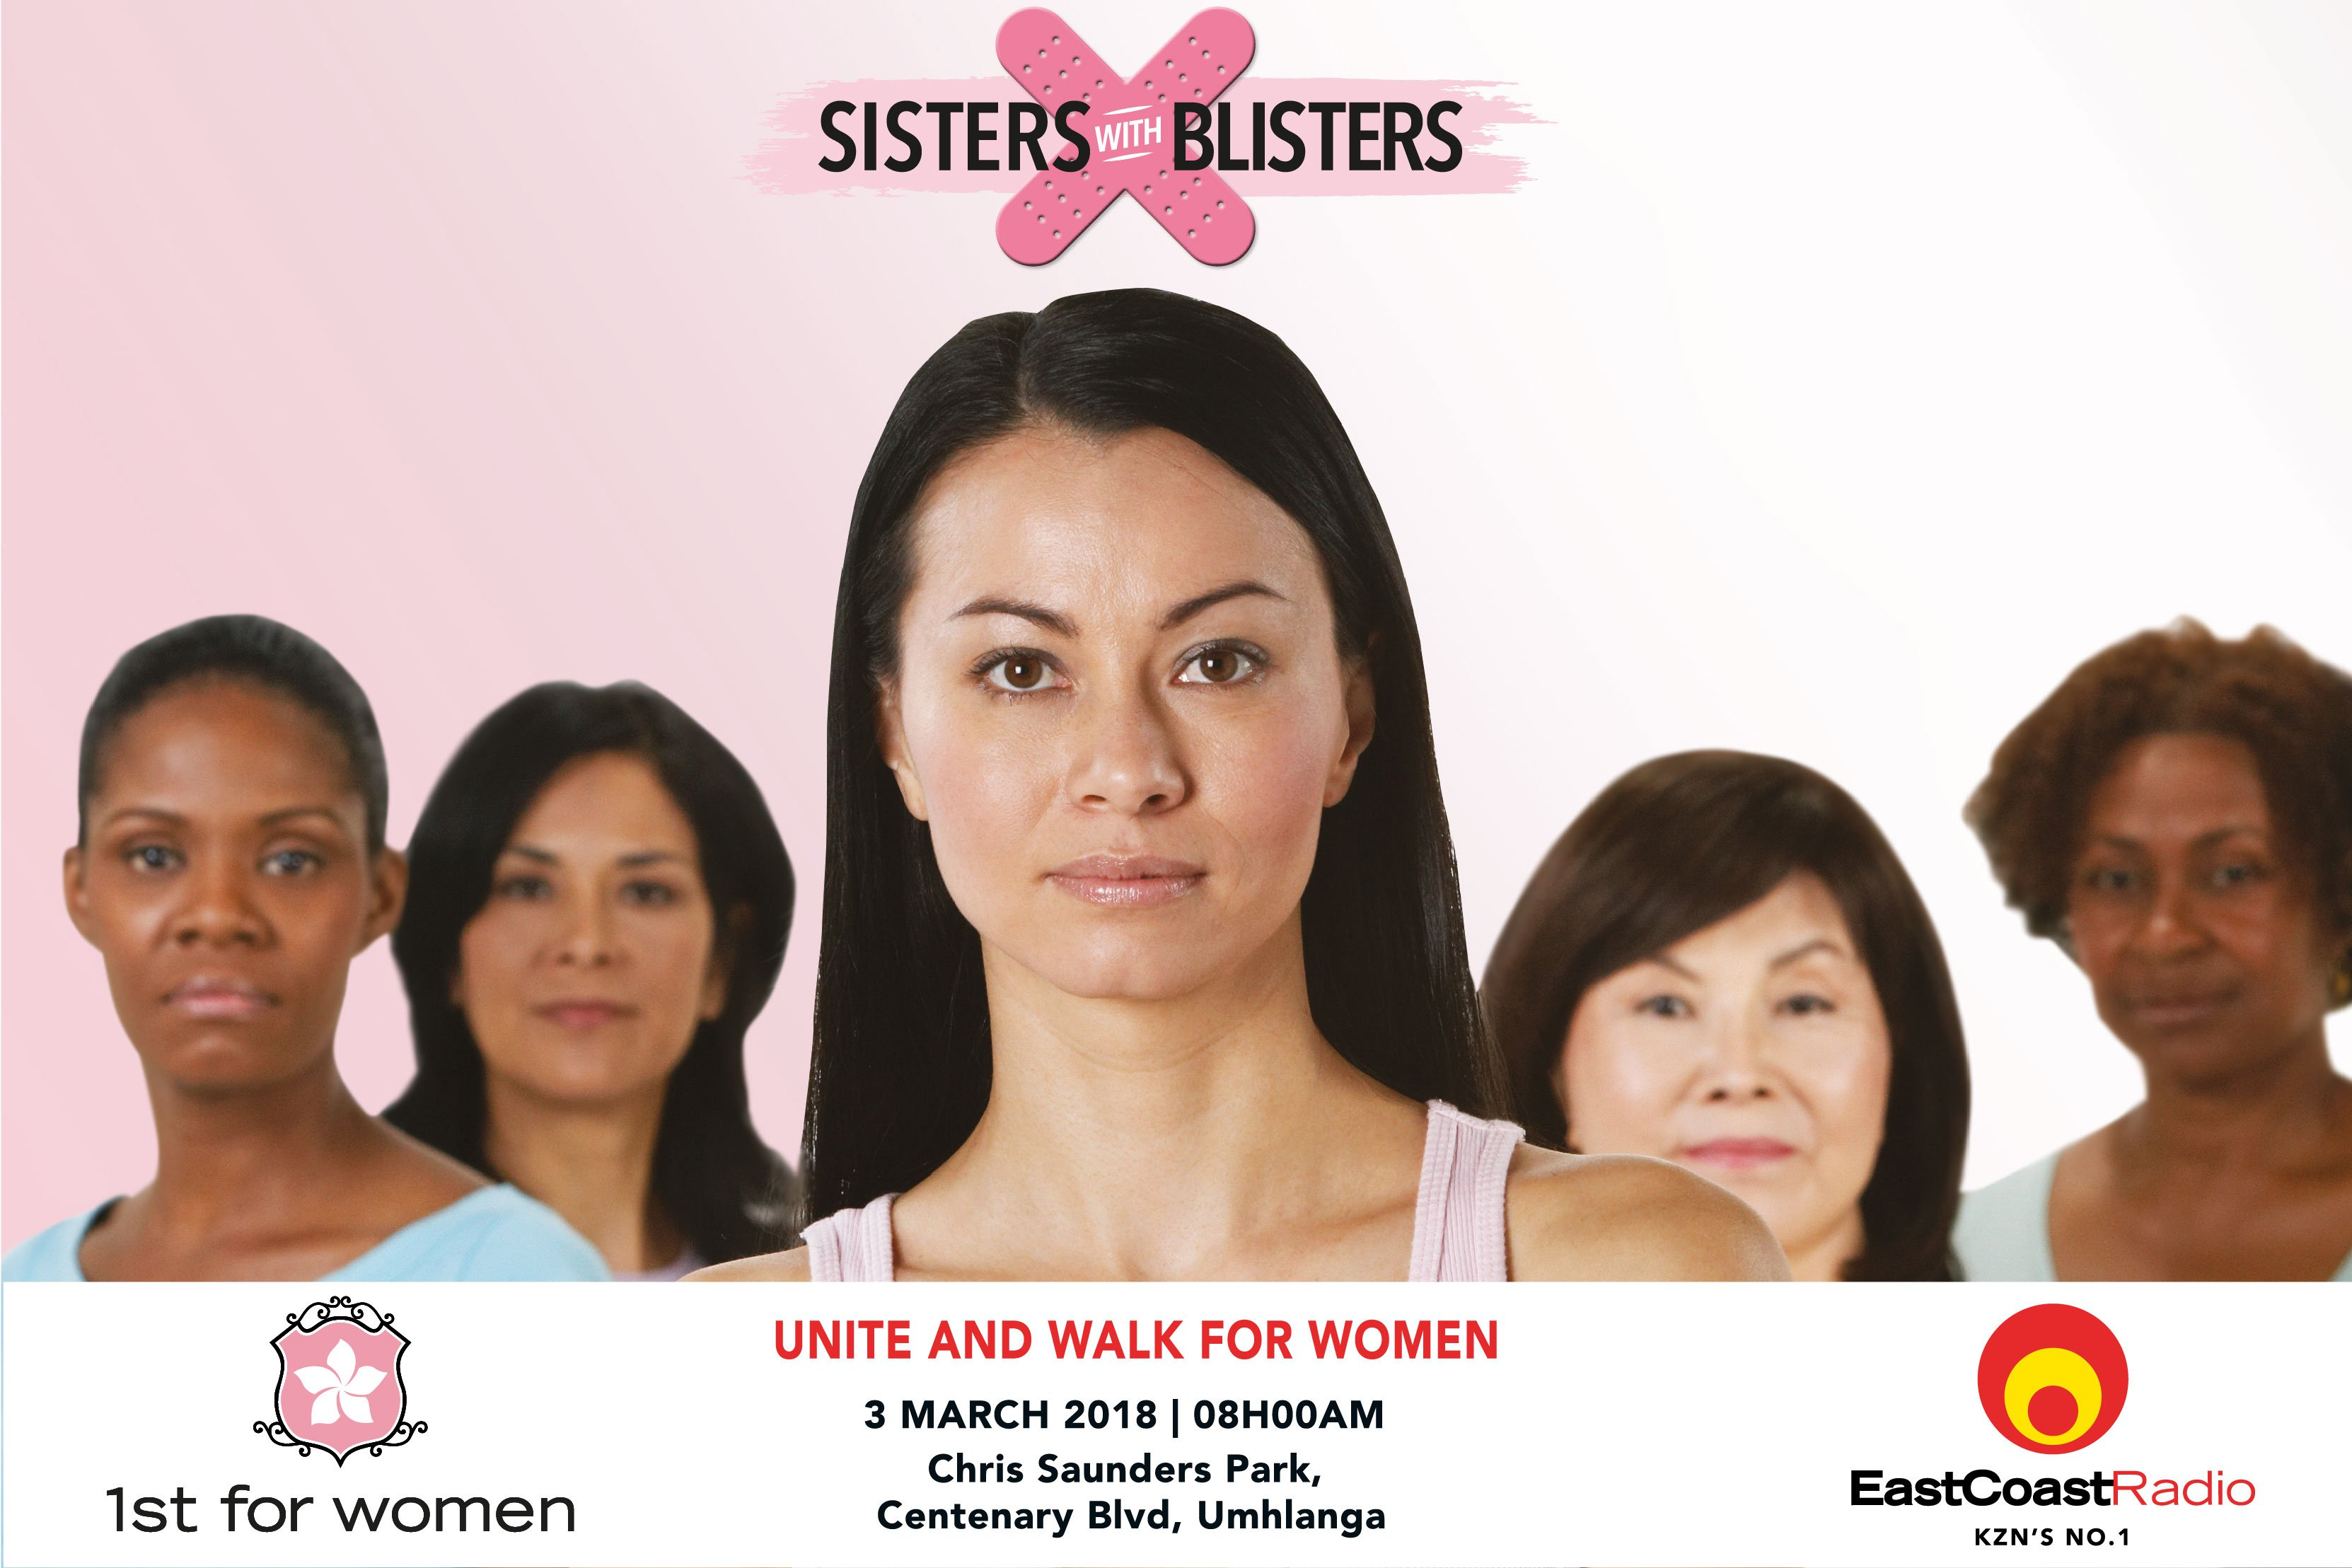 Sisters with blisters - ECR2018 - Body image